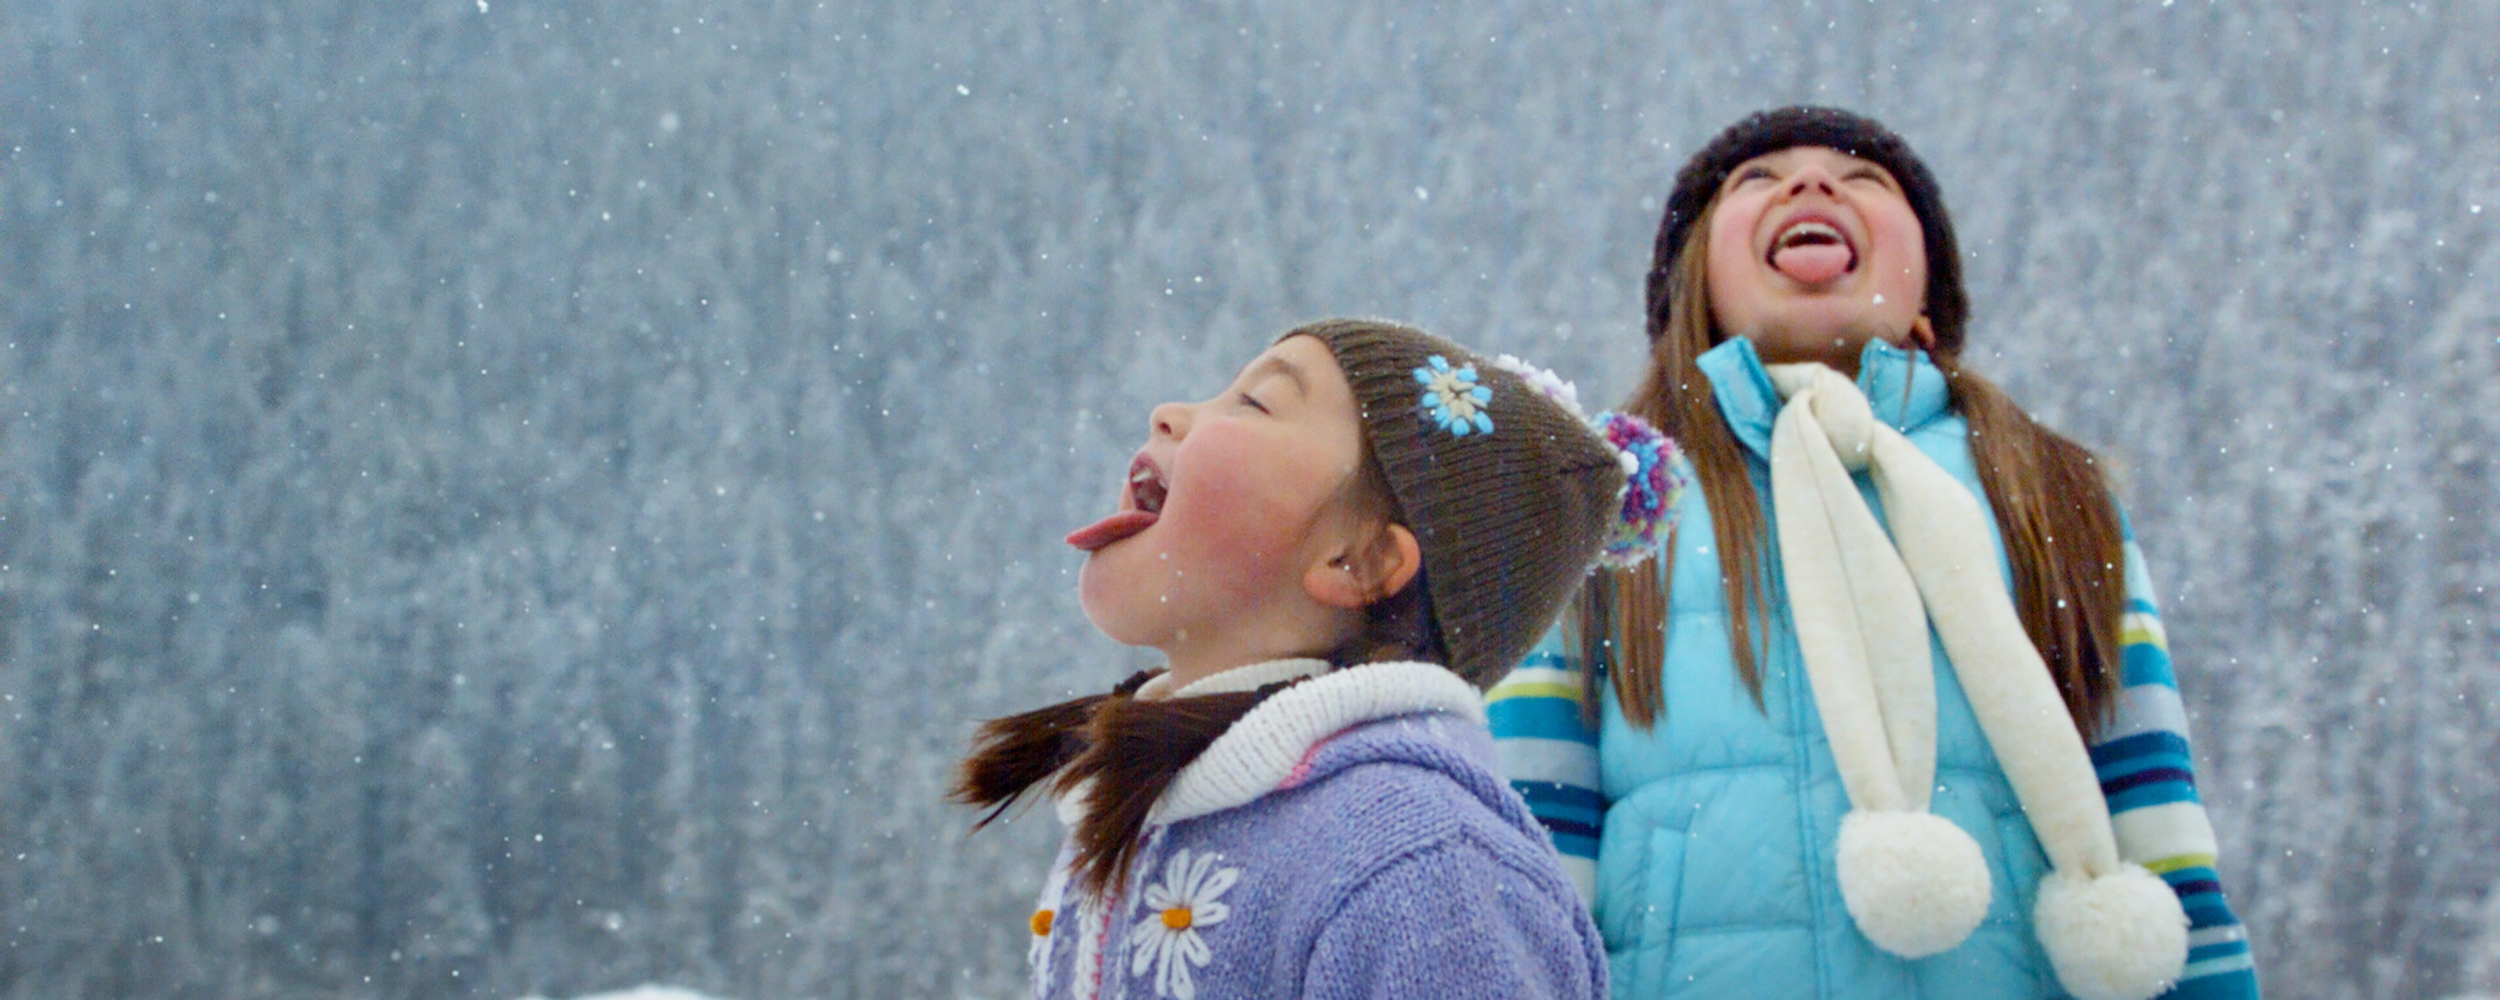 Two girls standing in the falling snow